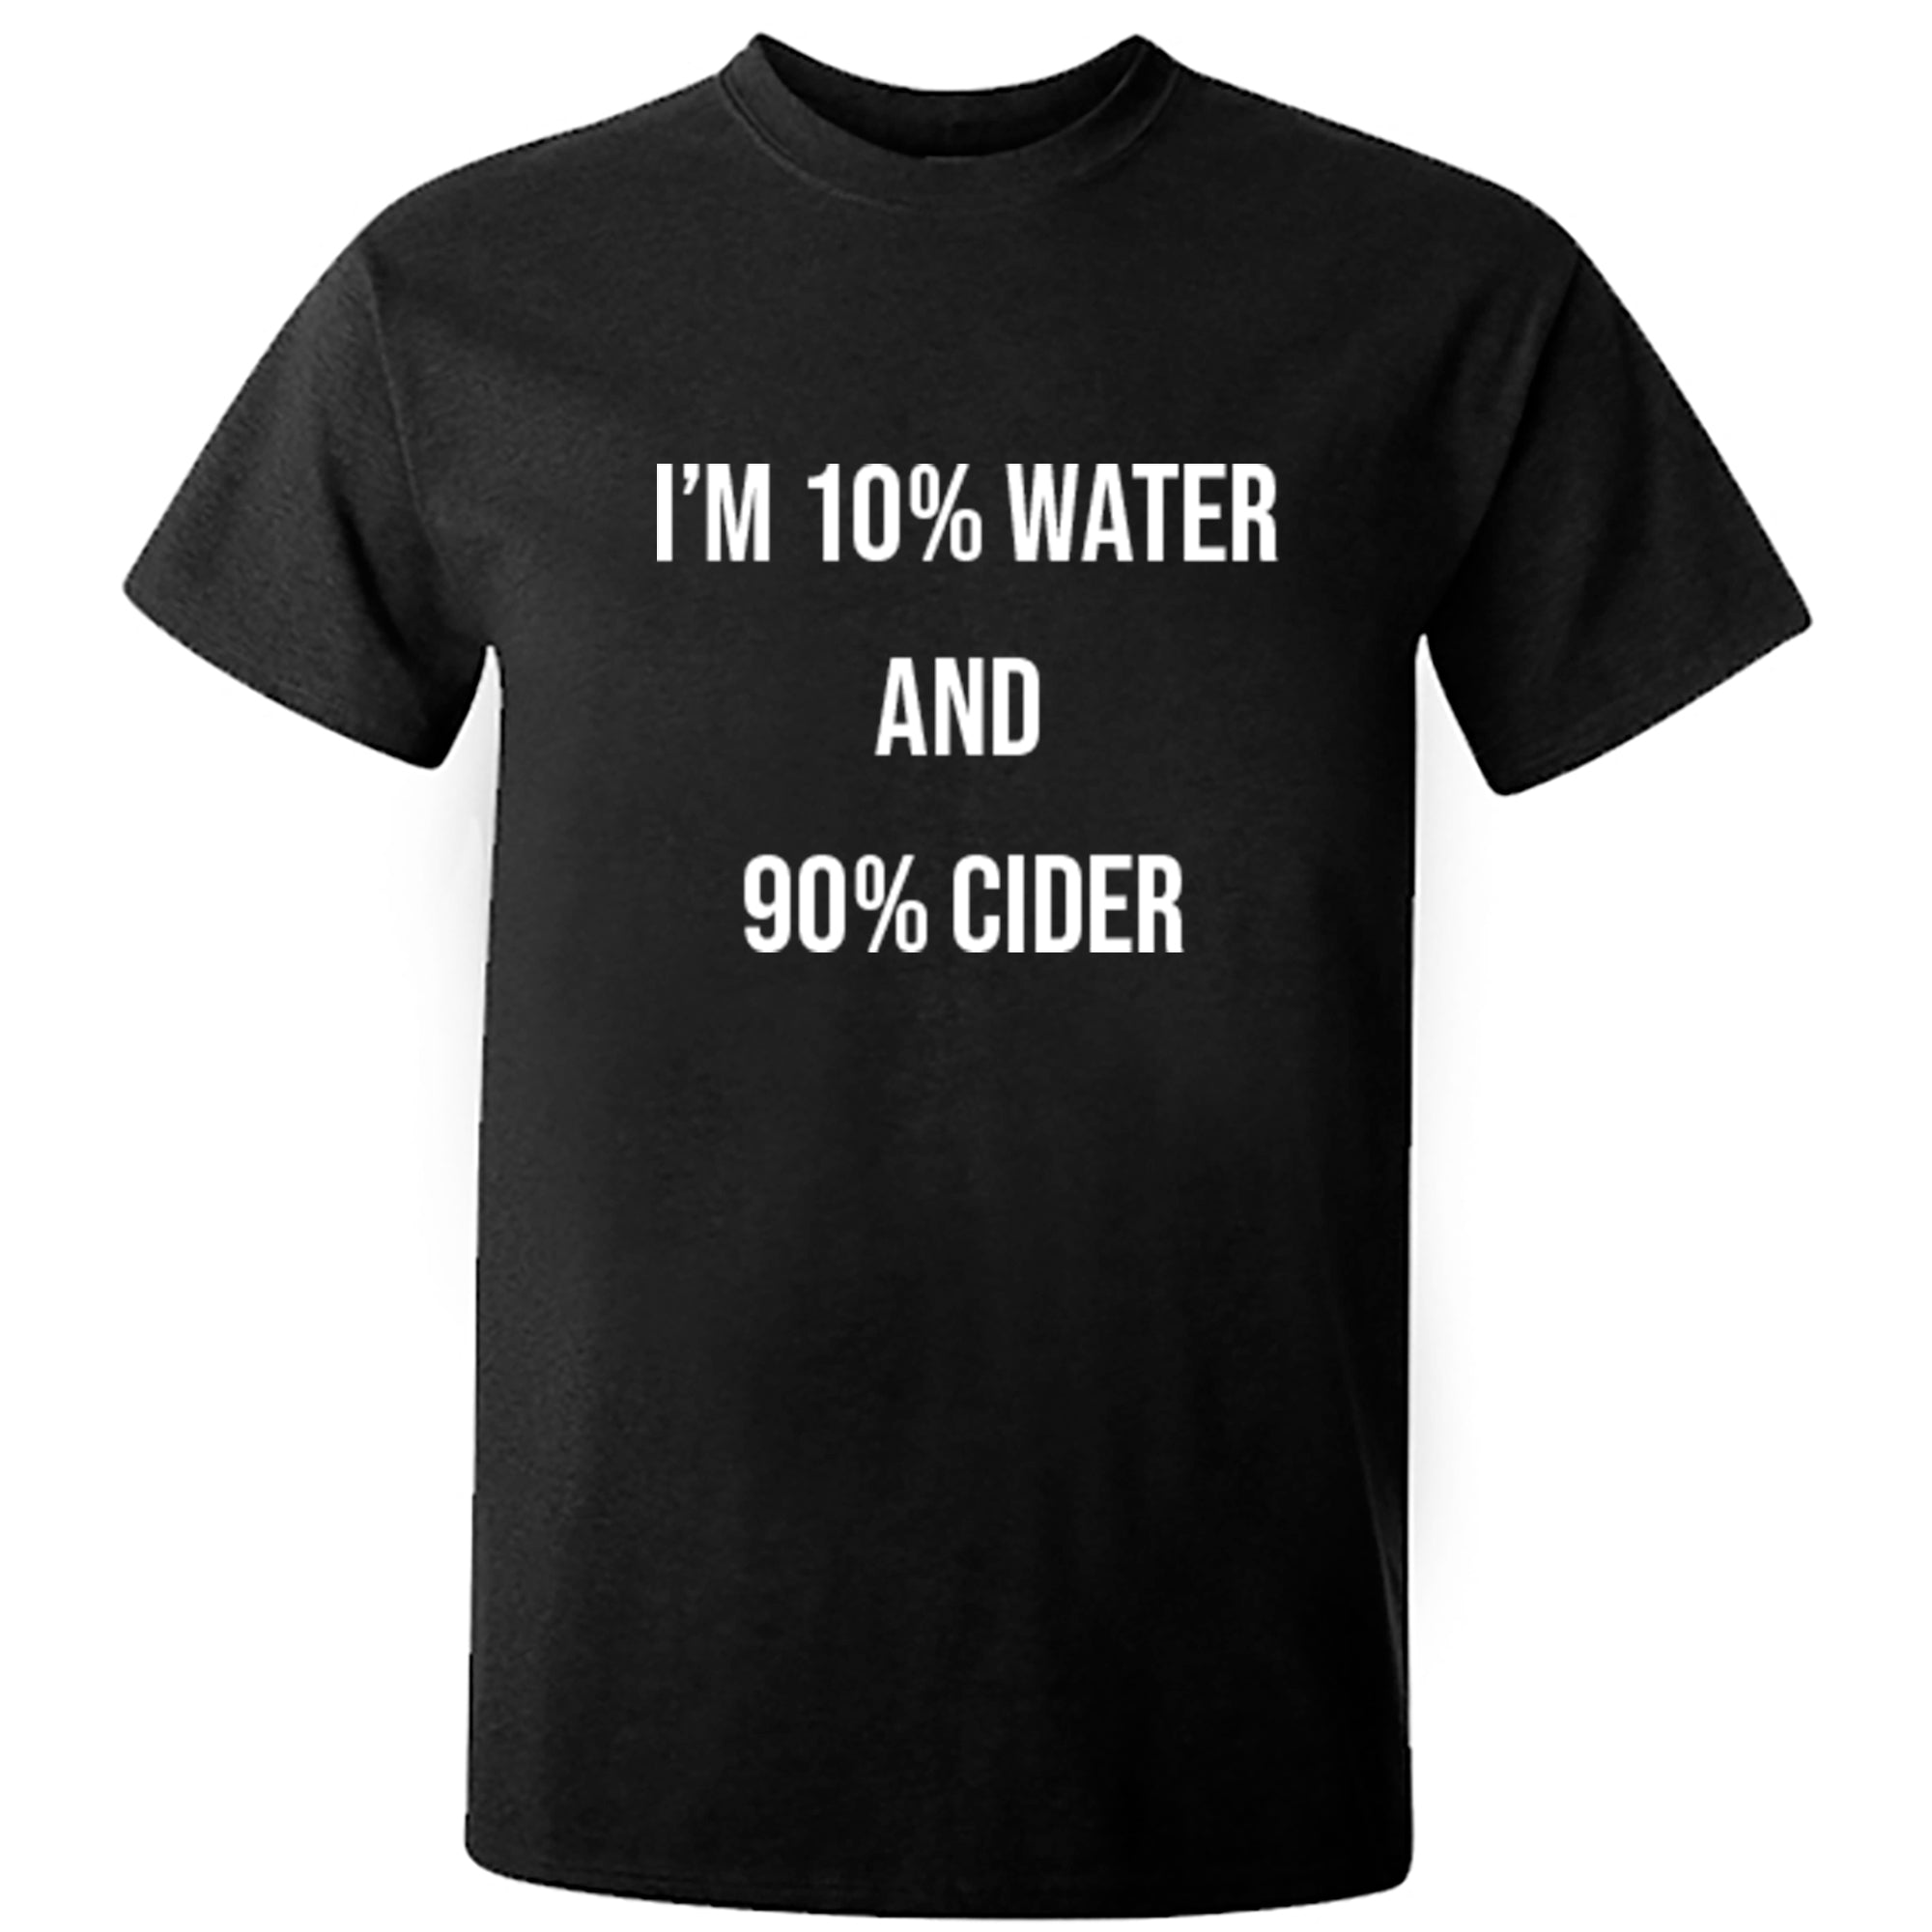 I'm 10% Water, 90% Cider Unisex Fit T-Shirt S0492 - Illustrated Identity Ltd.